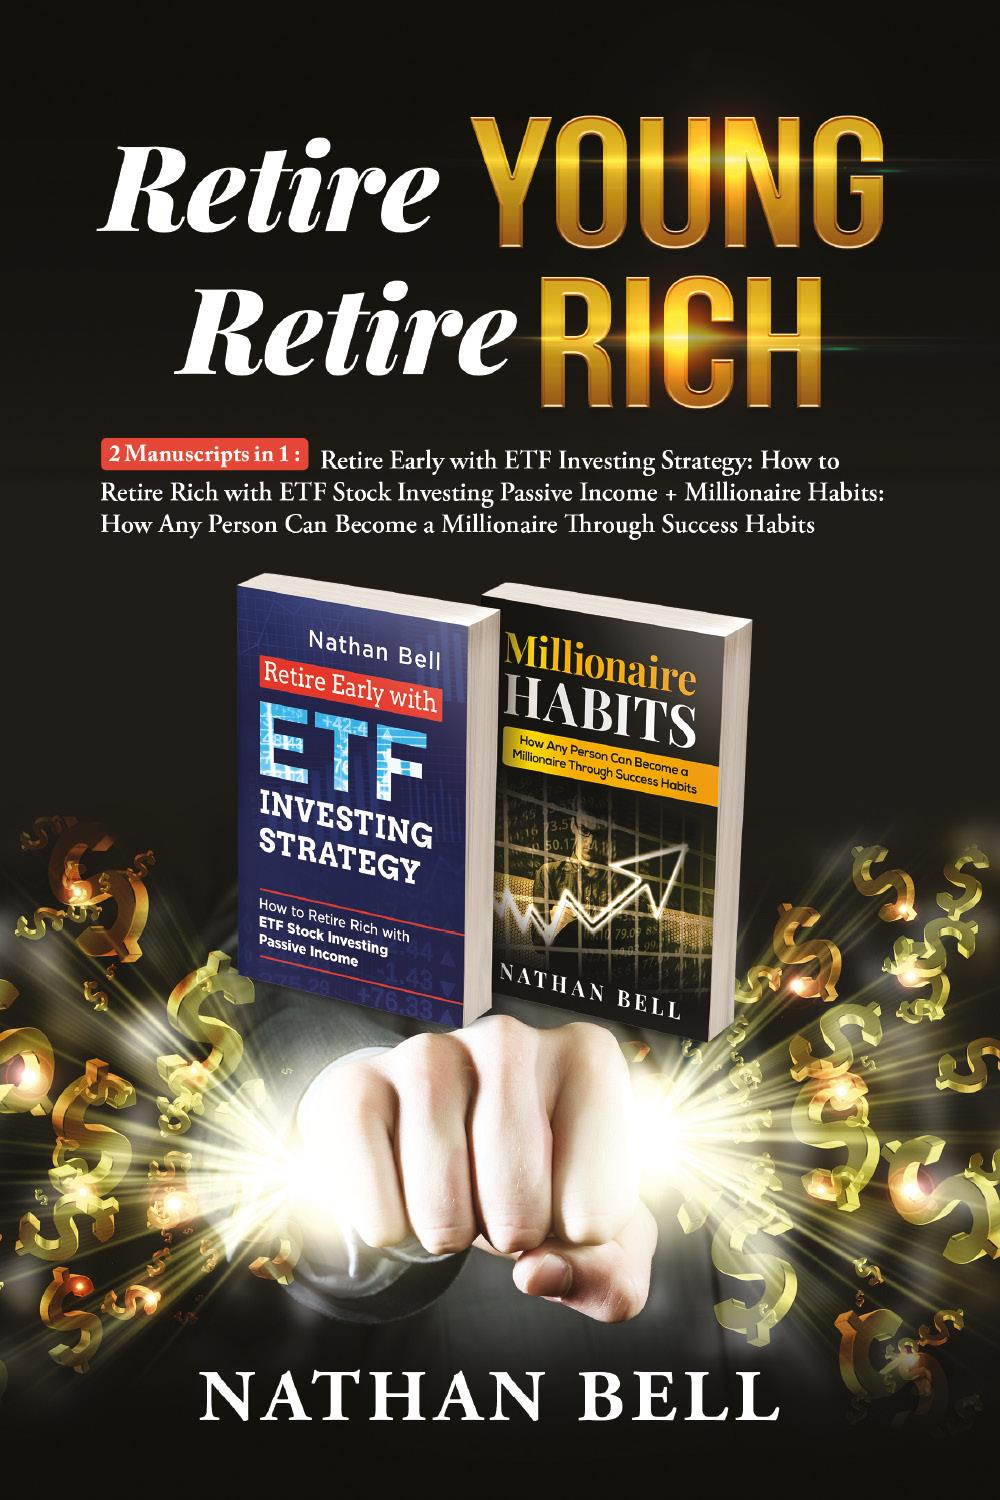 Retire Young Retire Rich: 2 Manuscripts in 1. Retire Early with ETF Investing Strategy: How to Retire Rich with ETF Stock Investing Passive Income + Millionaire Habits